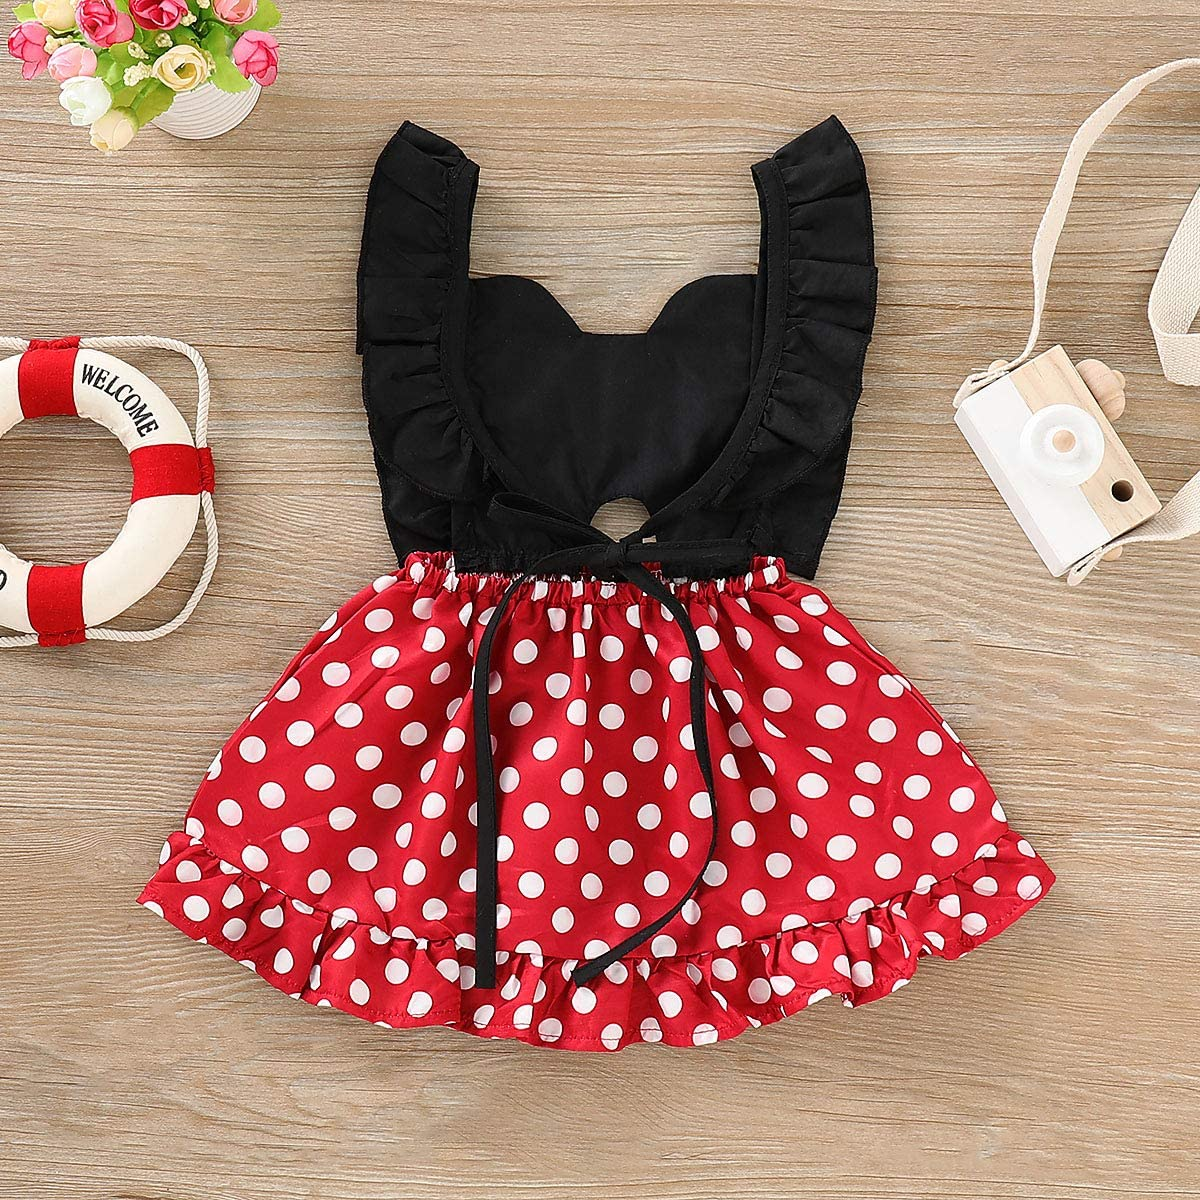 Muasaaluxi Infant Kid Baby Girls Summer Ruffled Sleeve Polka Dot Princess Dresss Backless Swing Mini Sundress Outfit 0-4Y